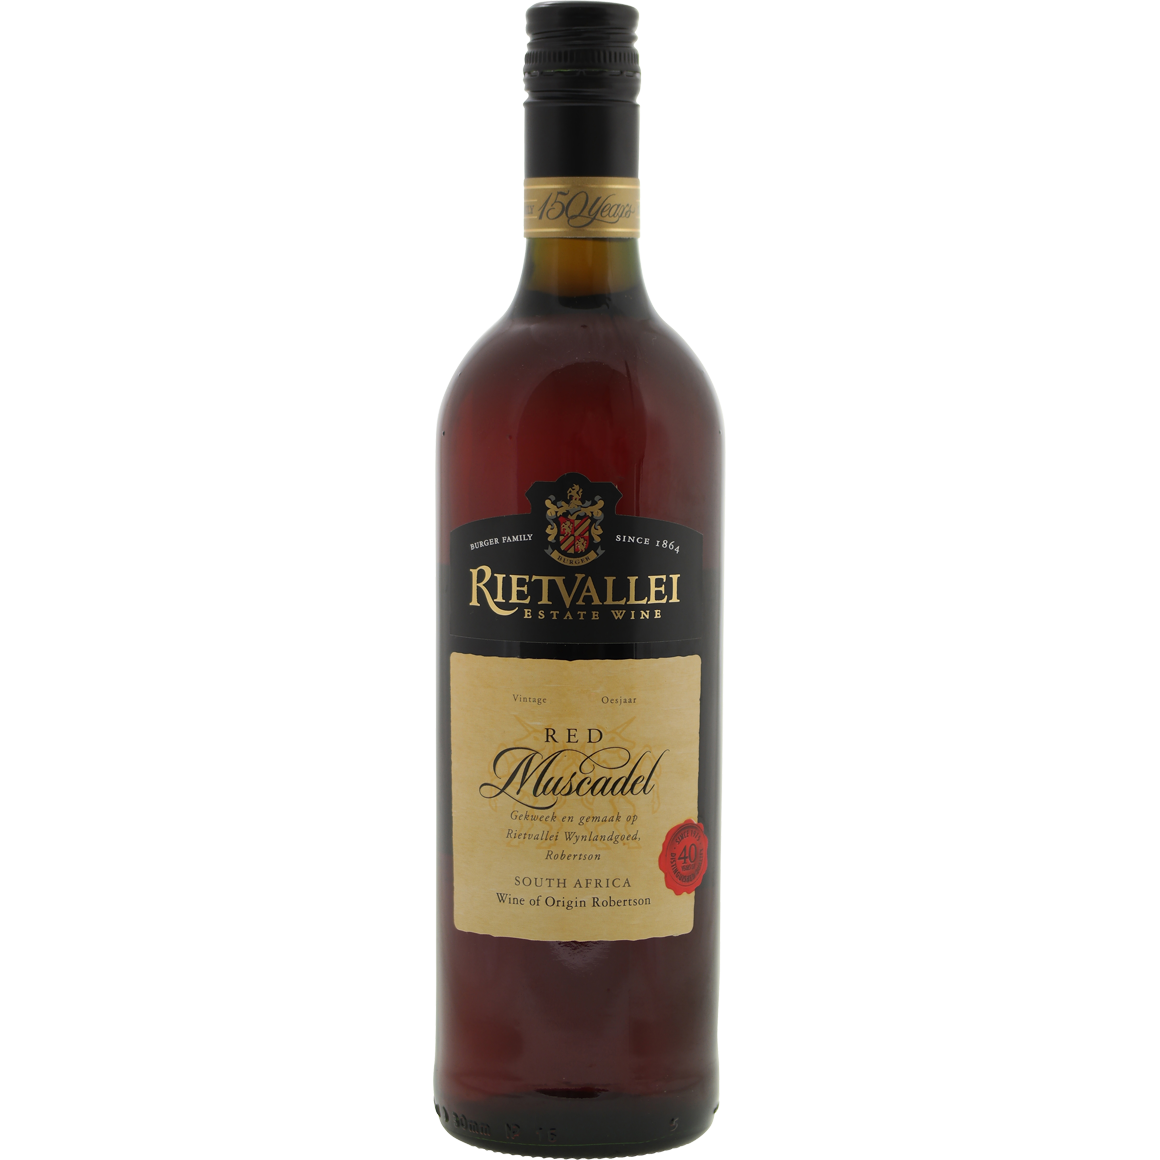 Rietvallei Classic Estate Red Muscadel